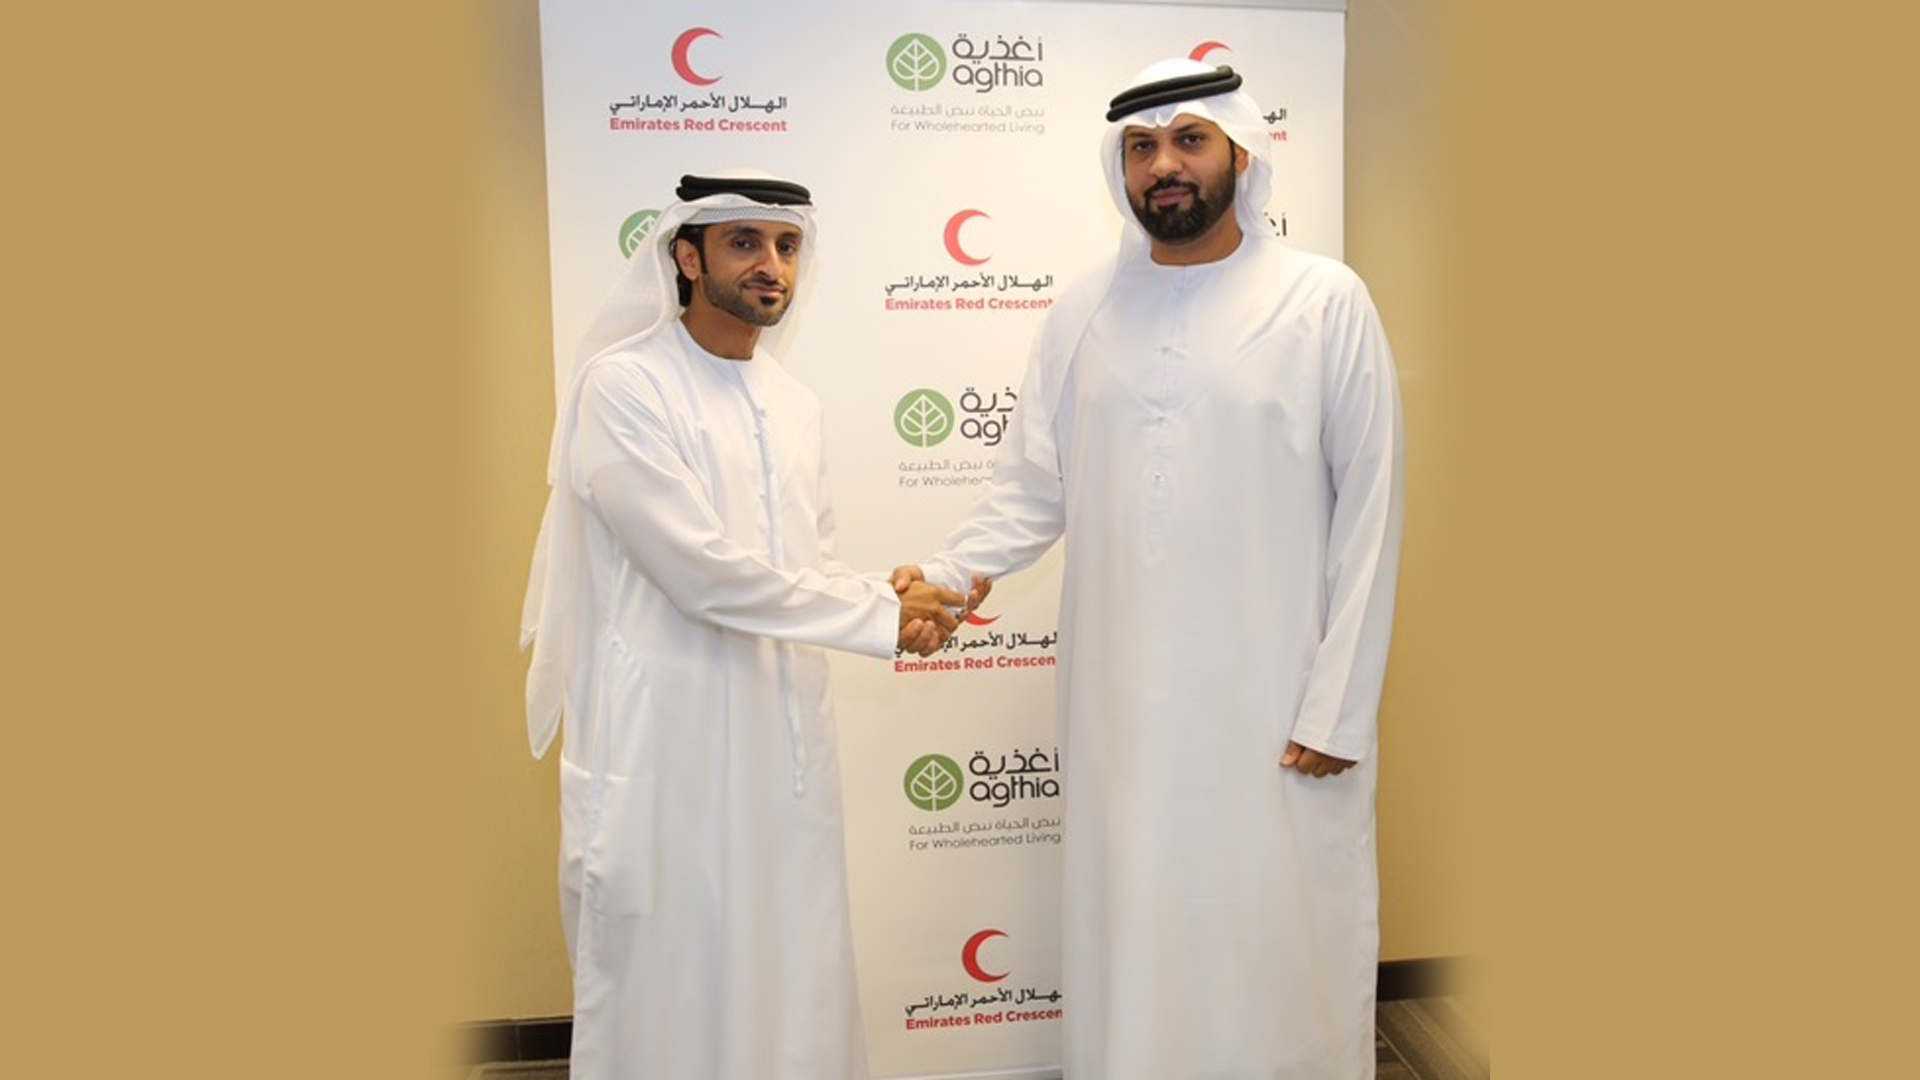 Agthia in Cooperation with the Emirates Red Crescent Goodwill Initiative